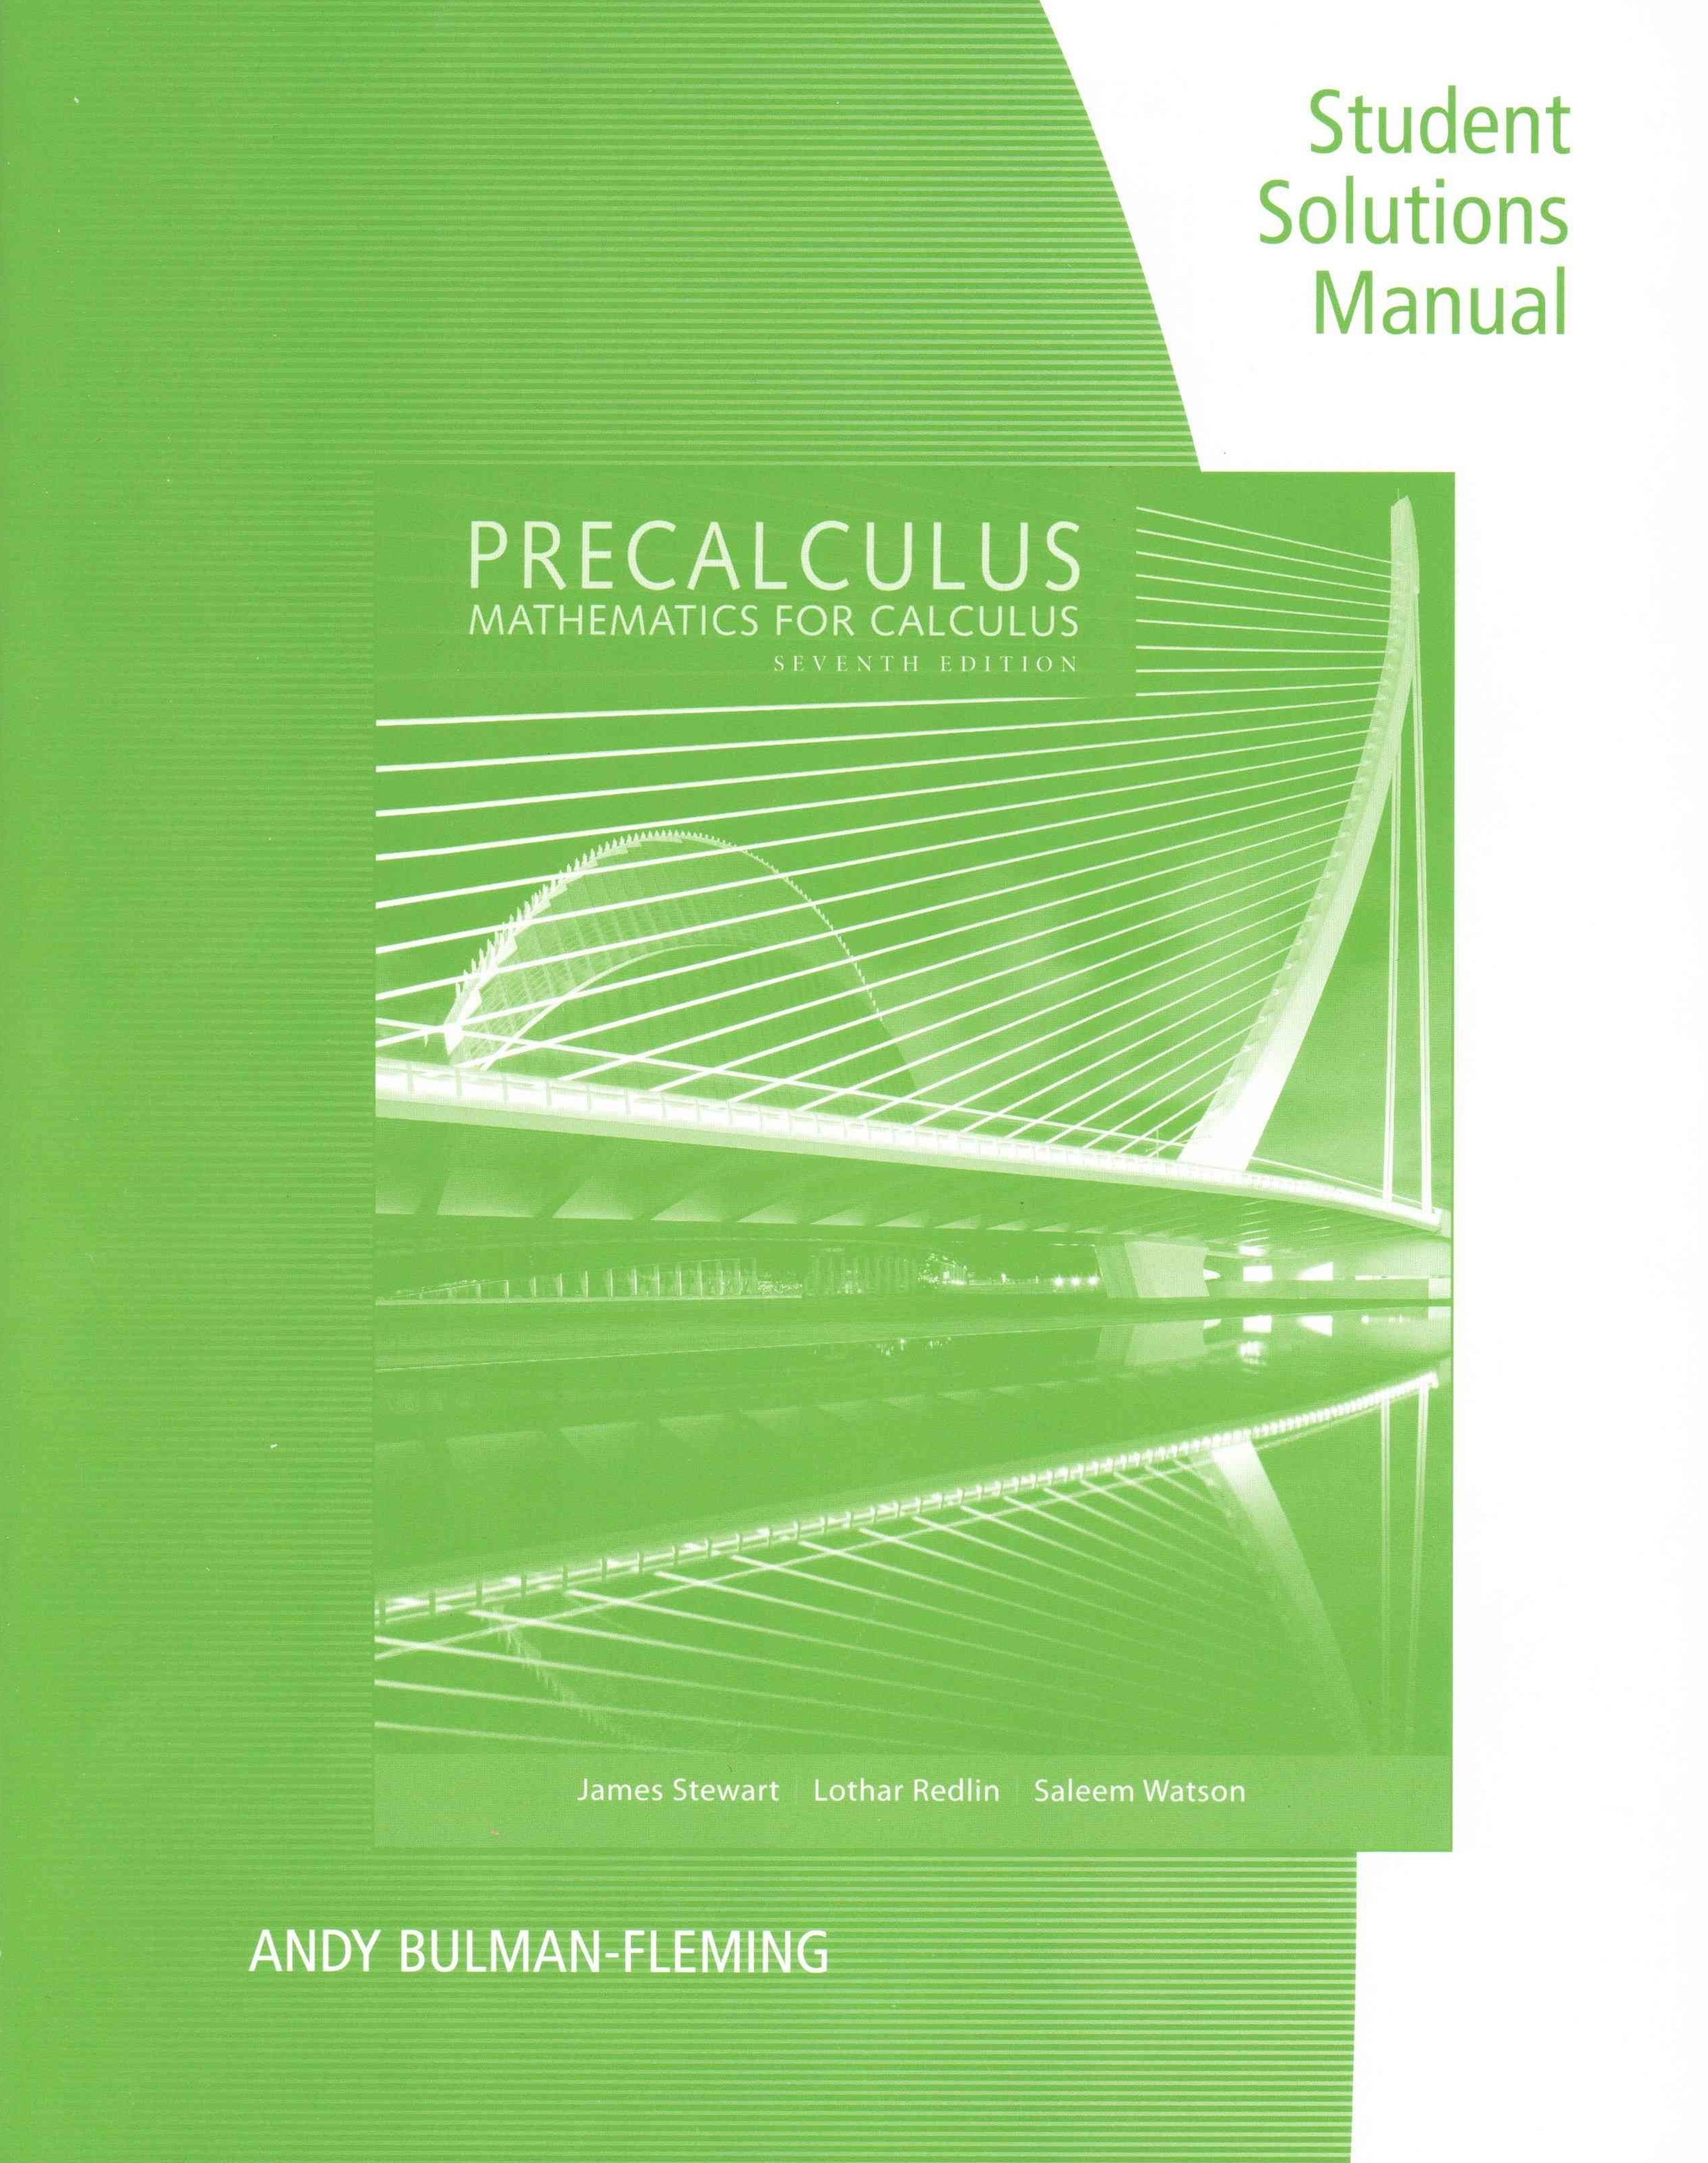 Student Solutions Manual for Stewart/Redlin/Watson's Precalculus:  Mathematics for Calculus, 7th